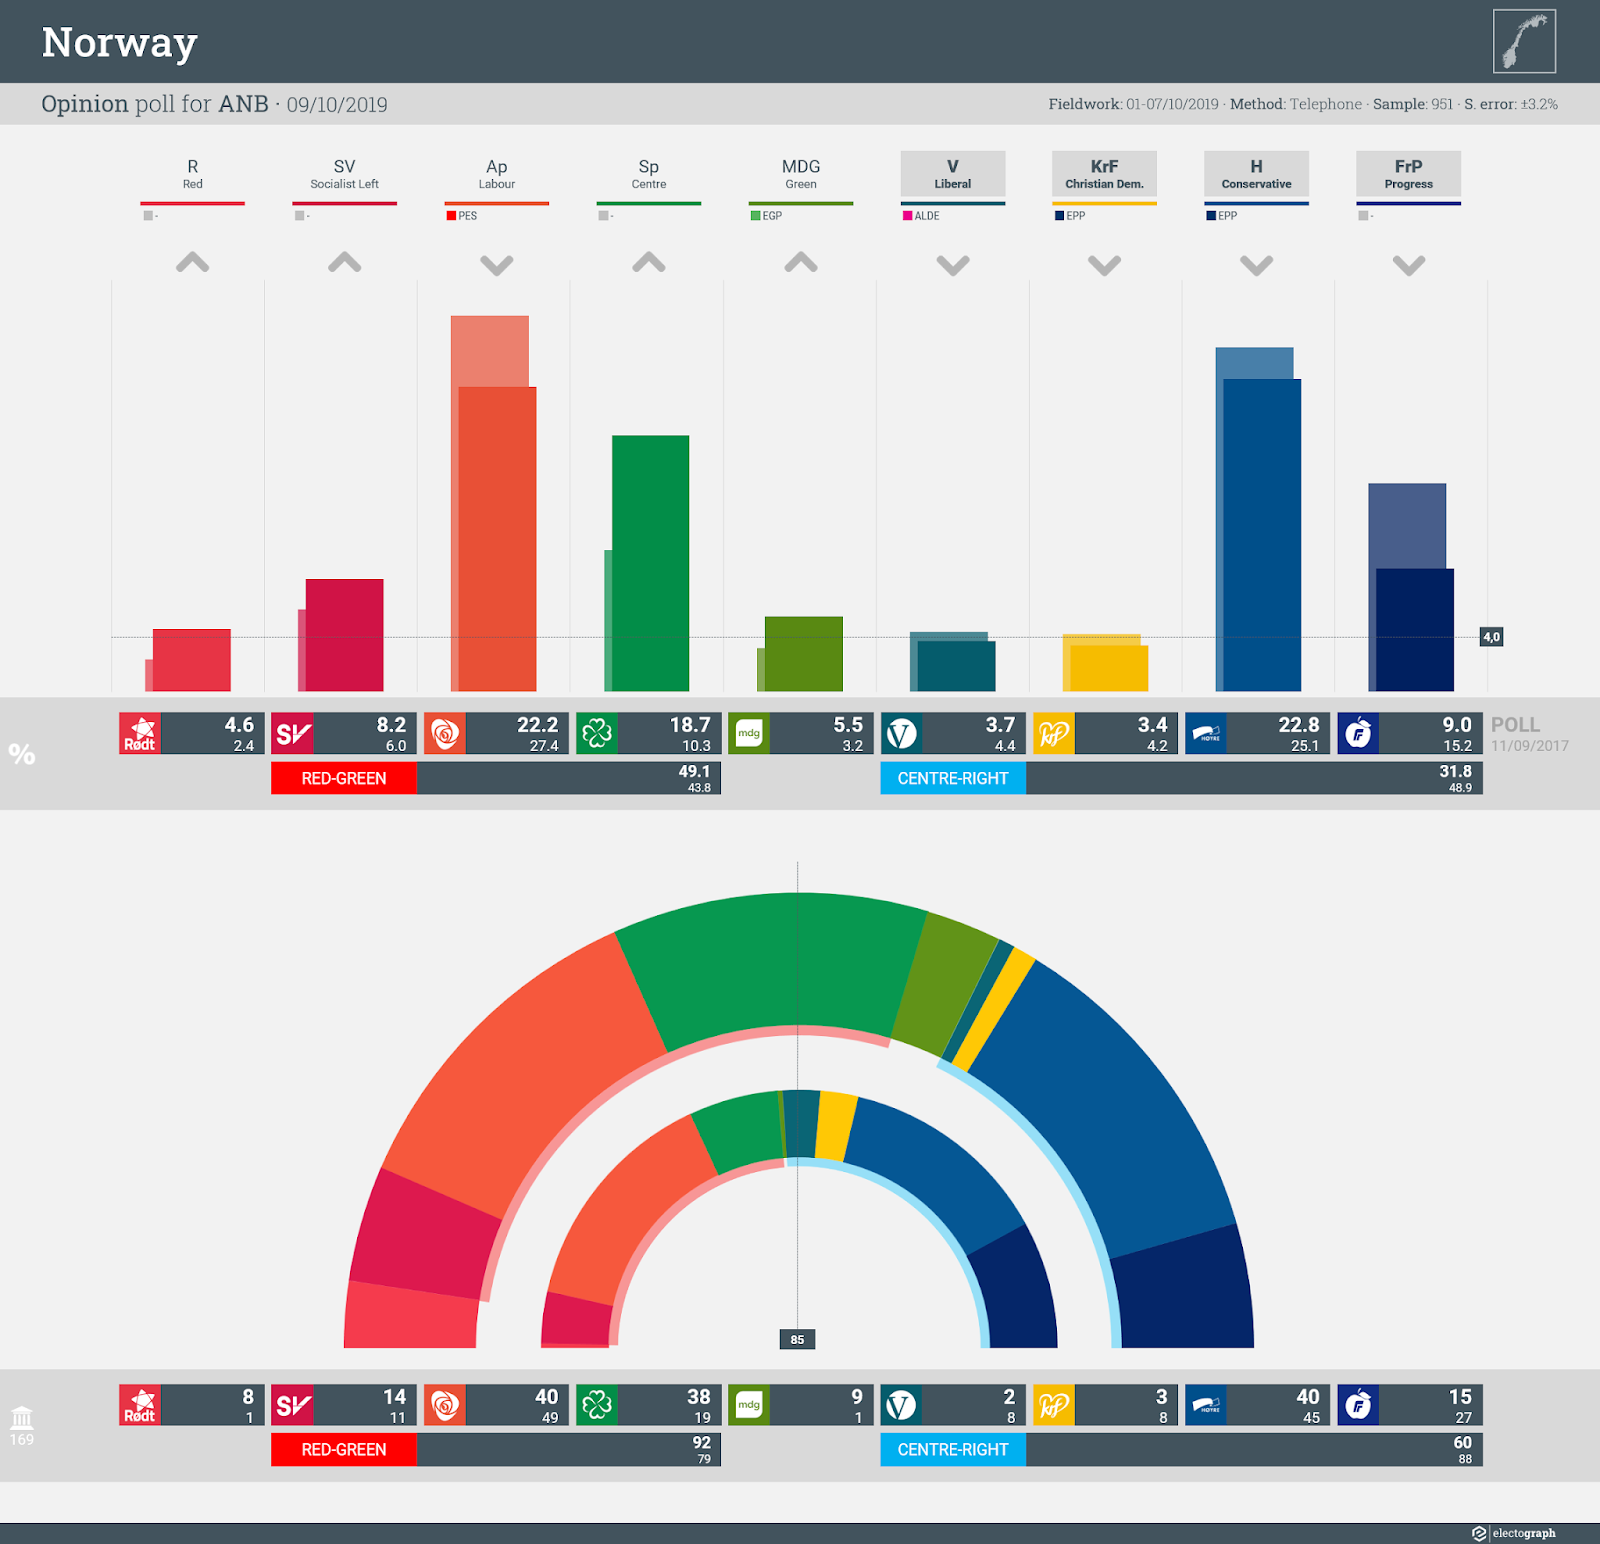 NORWAY: Opinion poll chart for ANB, 9 October 2019